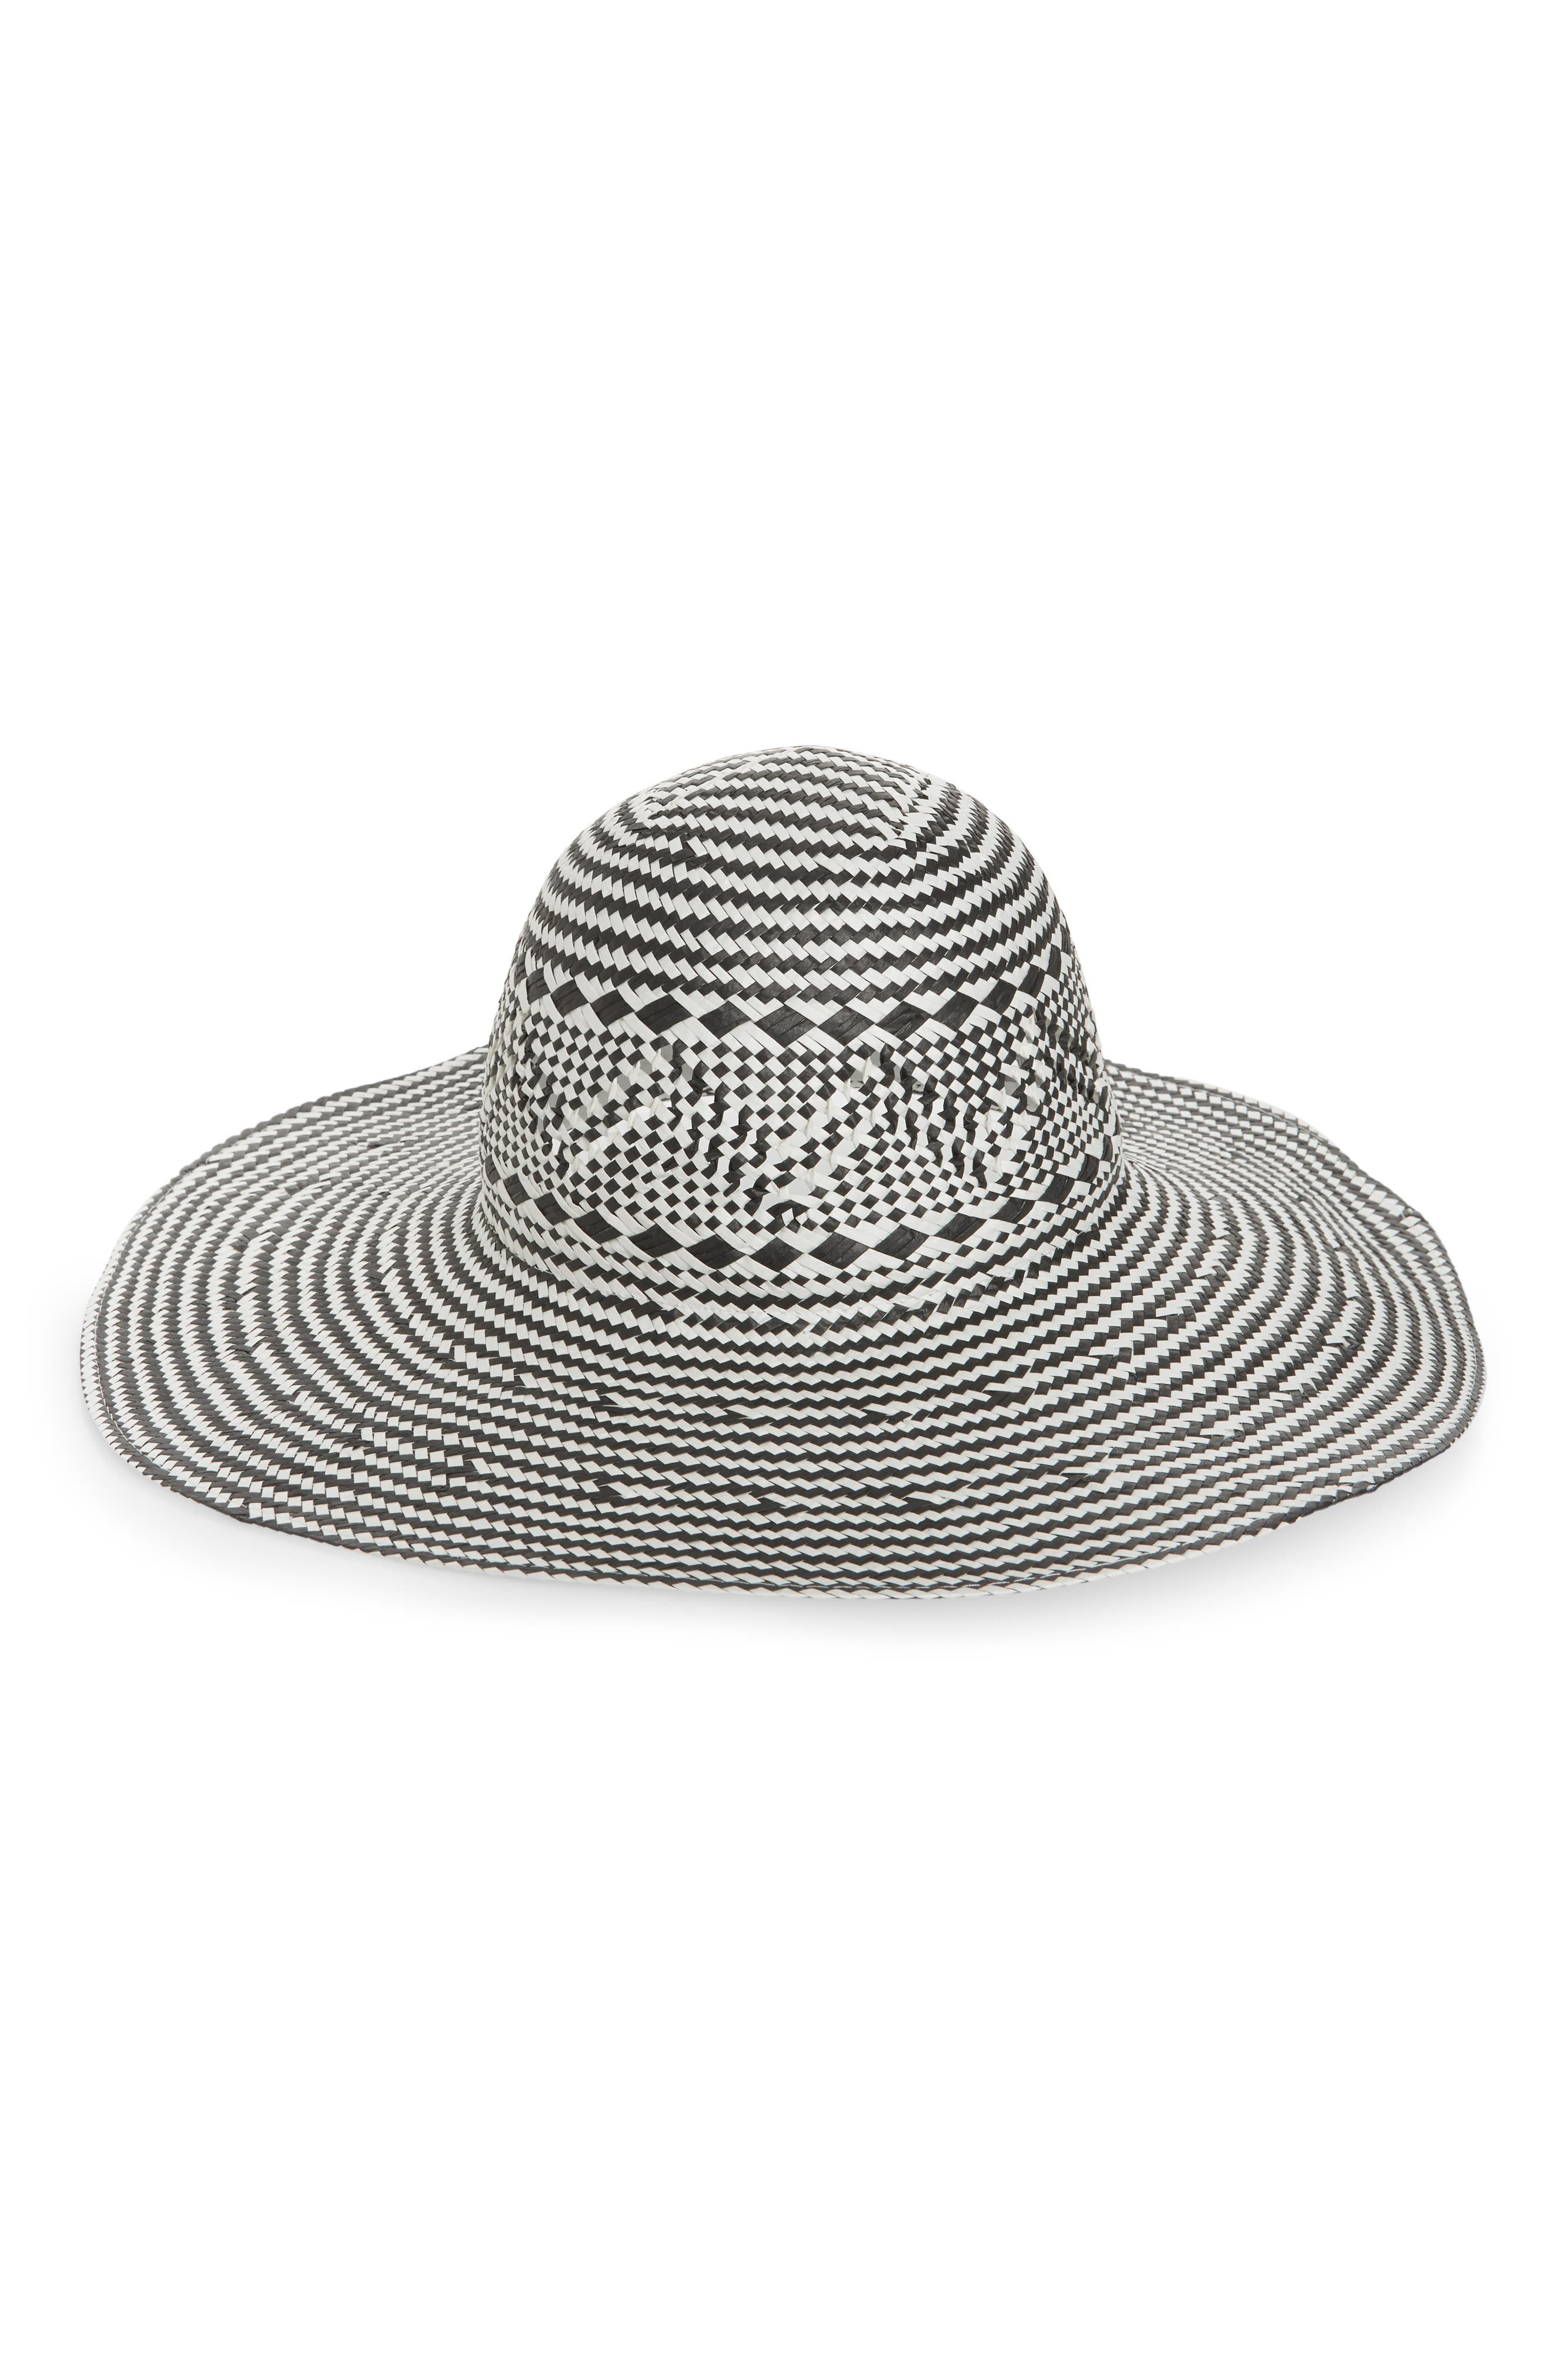 Main Image - Nordstrom Two-Tone Floppy Straw Hat